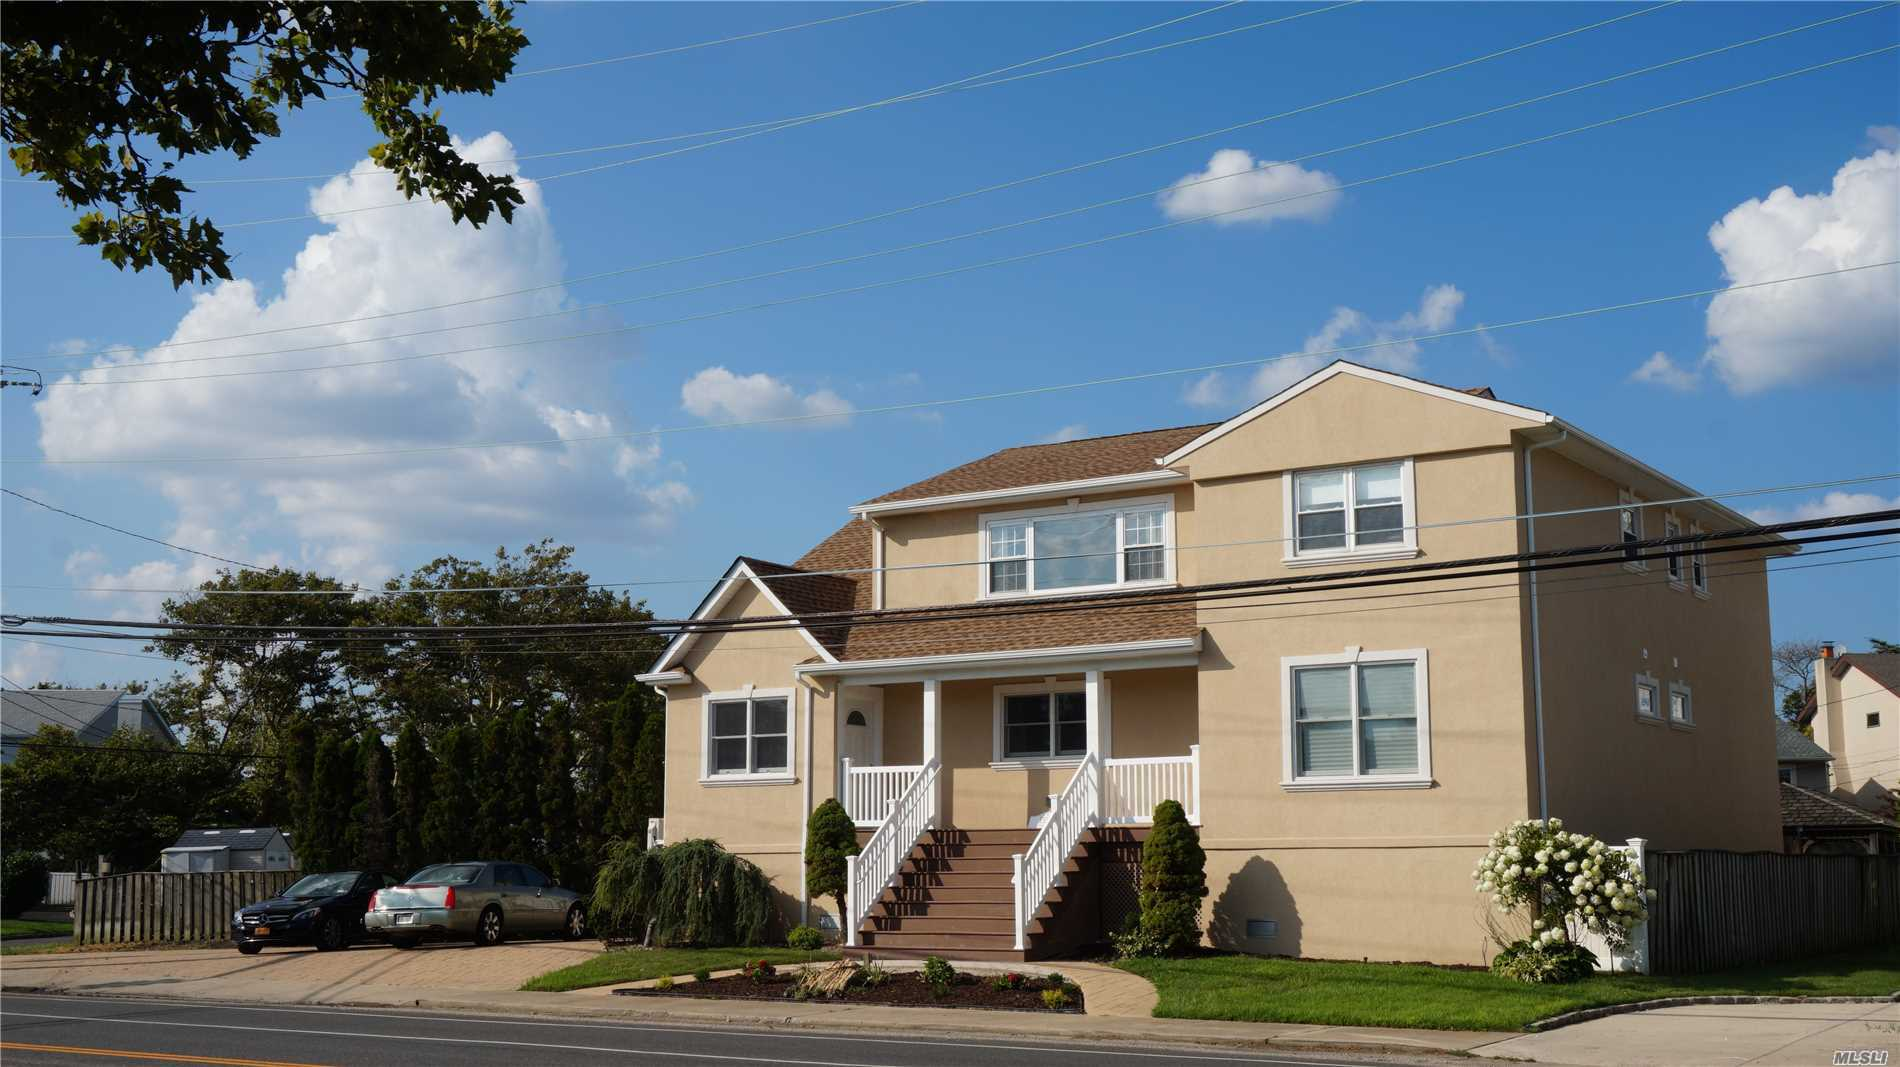 1590 Beech St Atlantic Beach, NY 11509